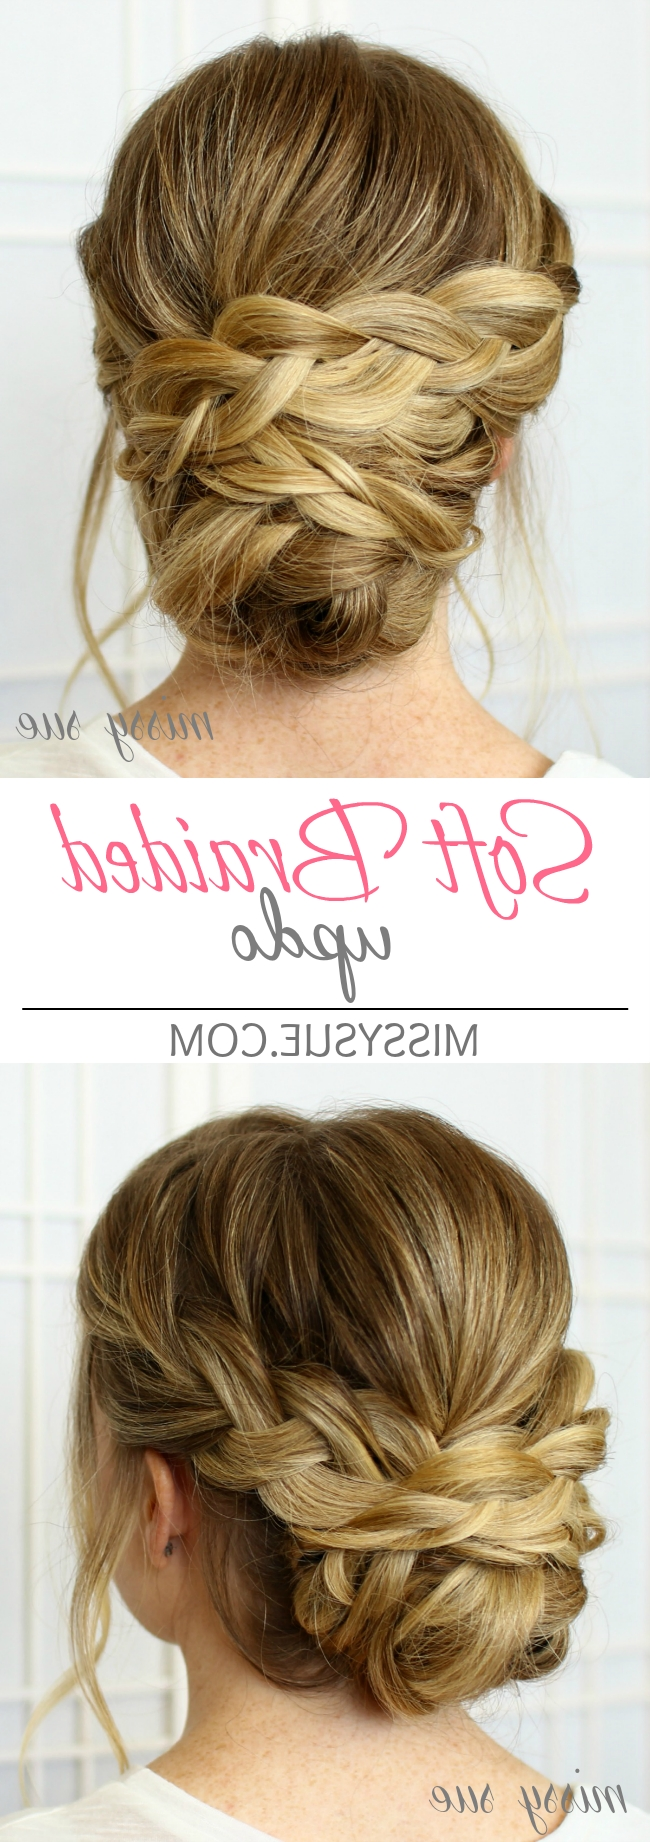 Current Updo Braided Hairstyles Throughout Soft Braided Updo (View 15 of 15)